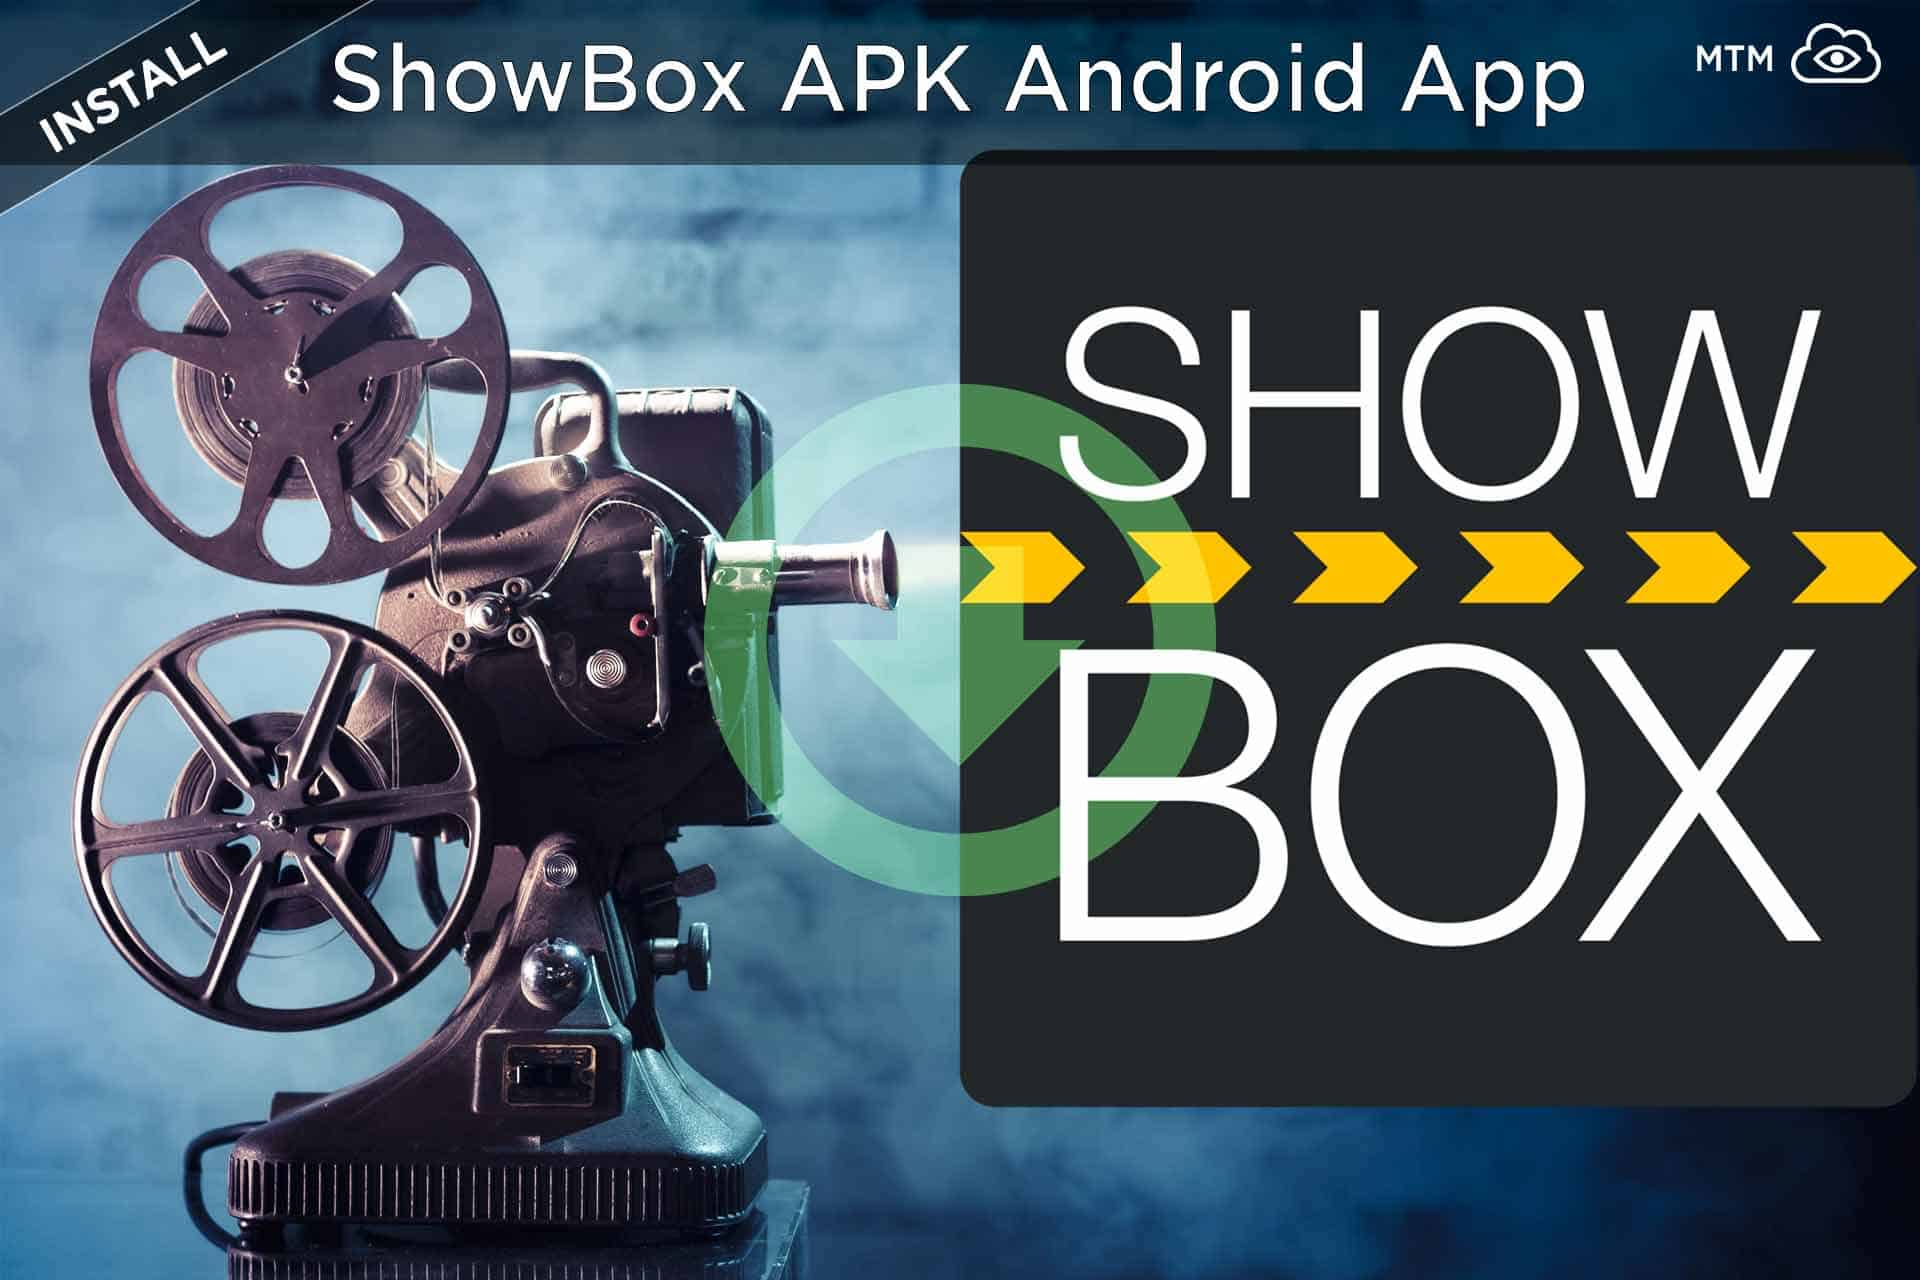 https://showbox.software/download/